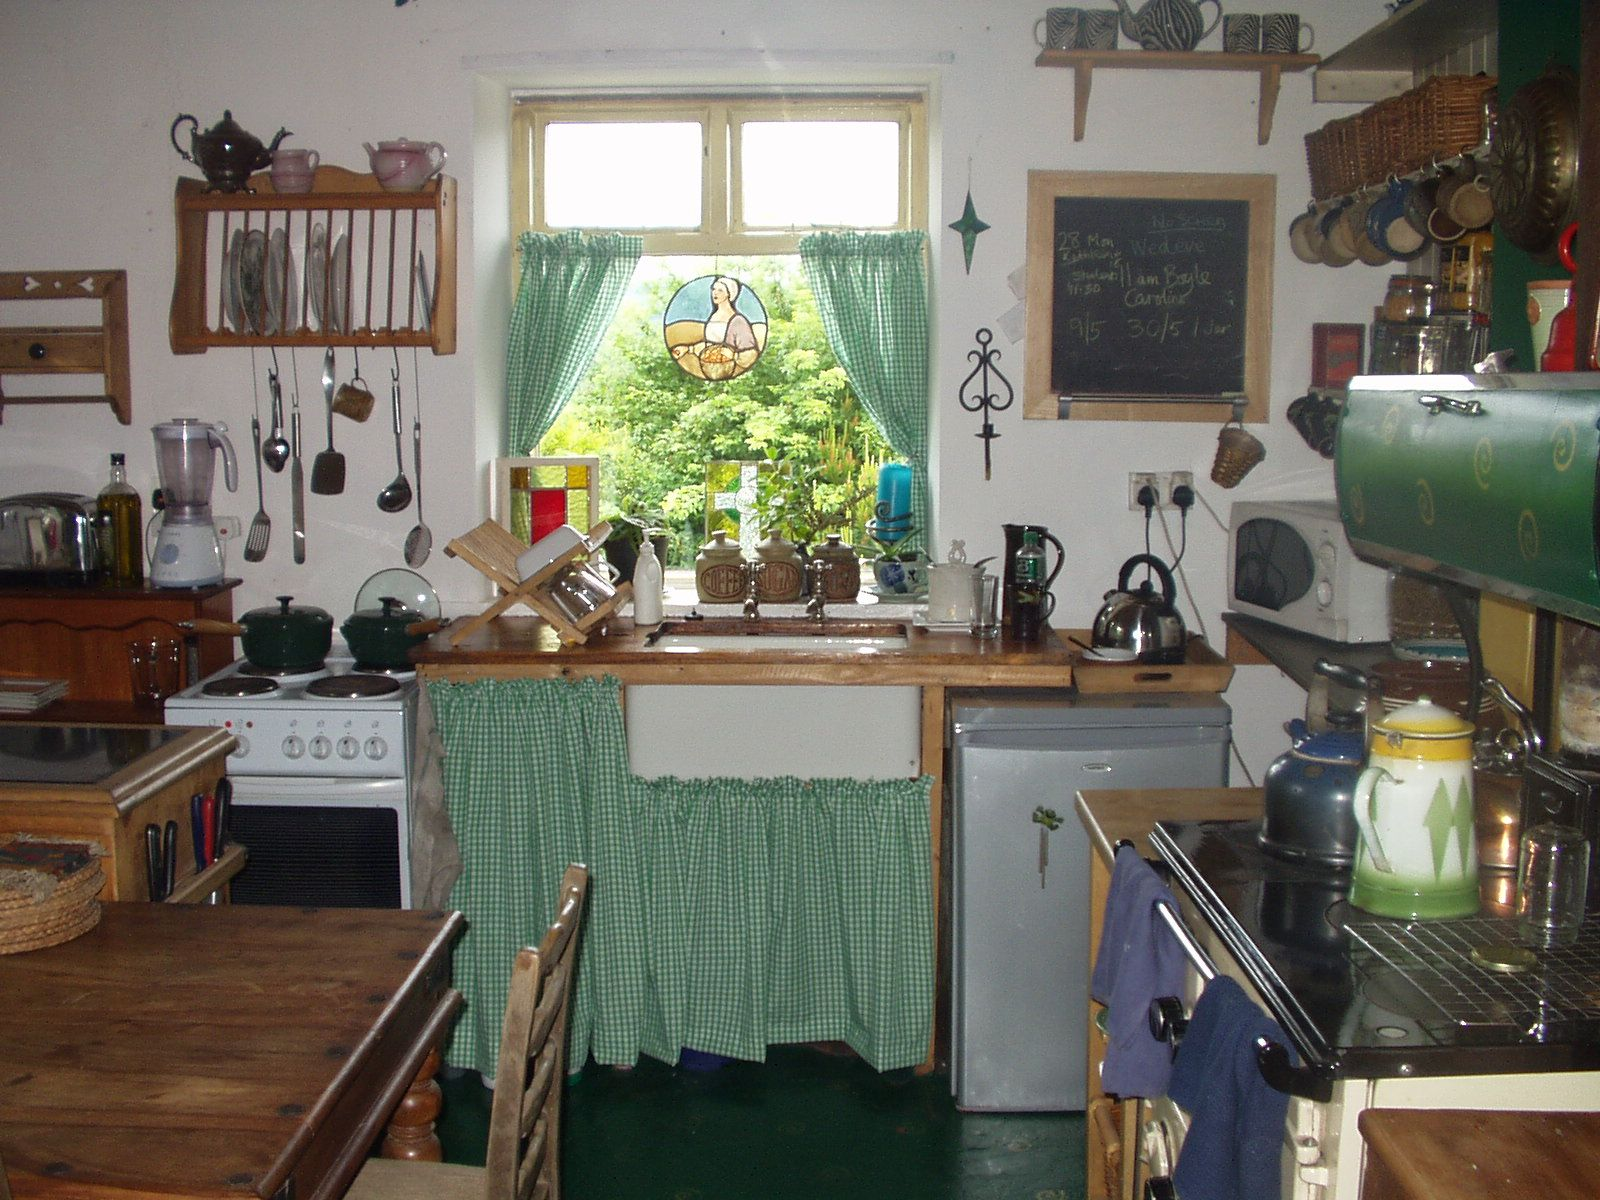 Irish Country Decor Images No Ed Kitchen Just Practical Things All Pulled Together